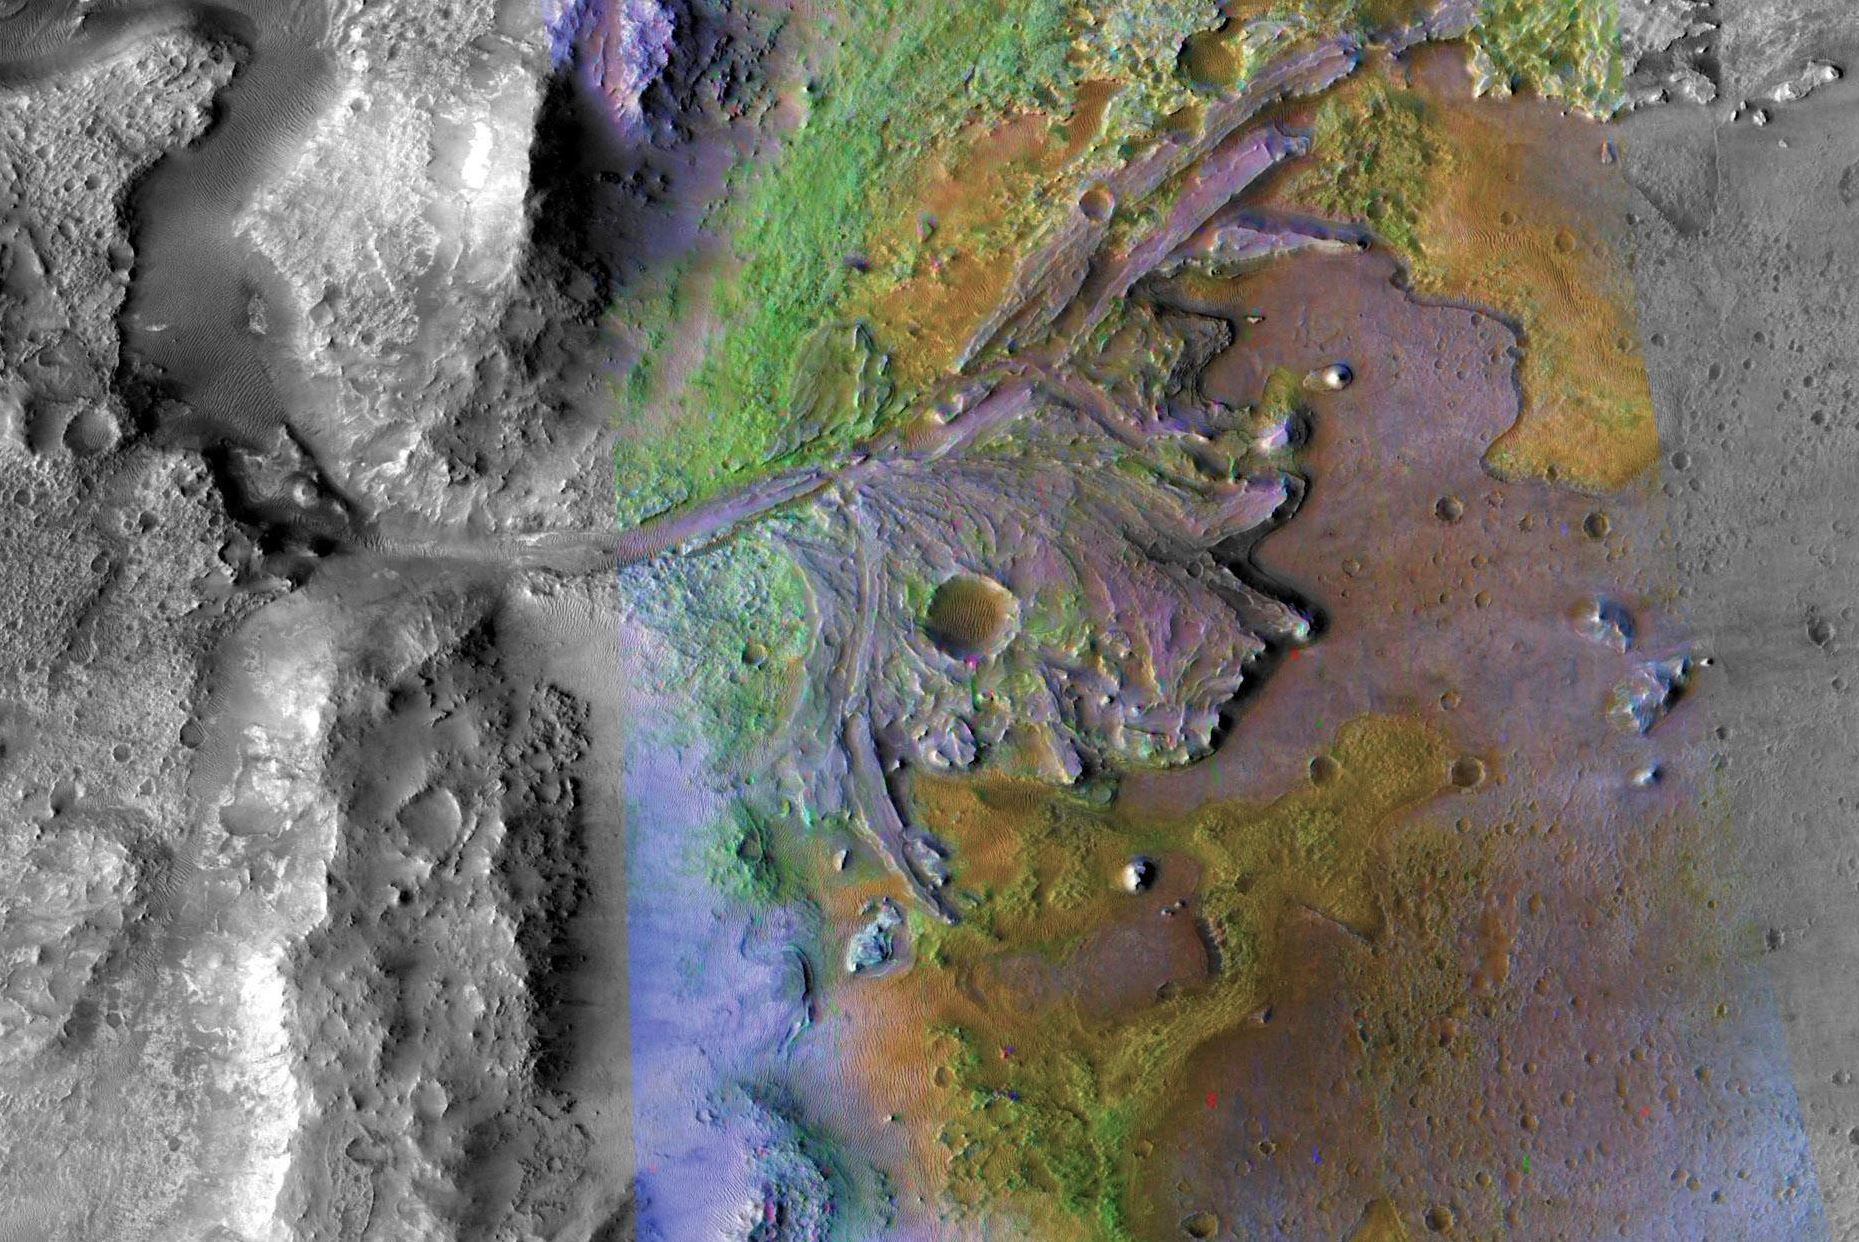 Jezero Crater on Mars is the landing site for NASA's Mars 2020 rover. This close-up image of the western edge of Jezero Crater combines an optical image from MRO's Context Camera with data from CRISM, the Compact Reconnaissance Imaging Spectrometer for Mars. The Spectrometer data shows that sediments carried into the lake and deposited at the bottom contain clays and carbonates. Some of the carbonates indicate that the water was the correct pH for life - Image Credit:  NASA/JPL-Caltech/ASU